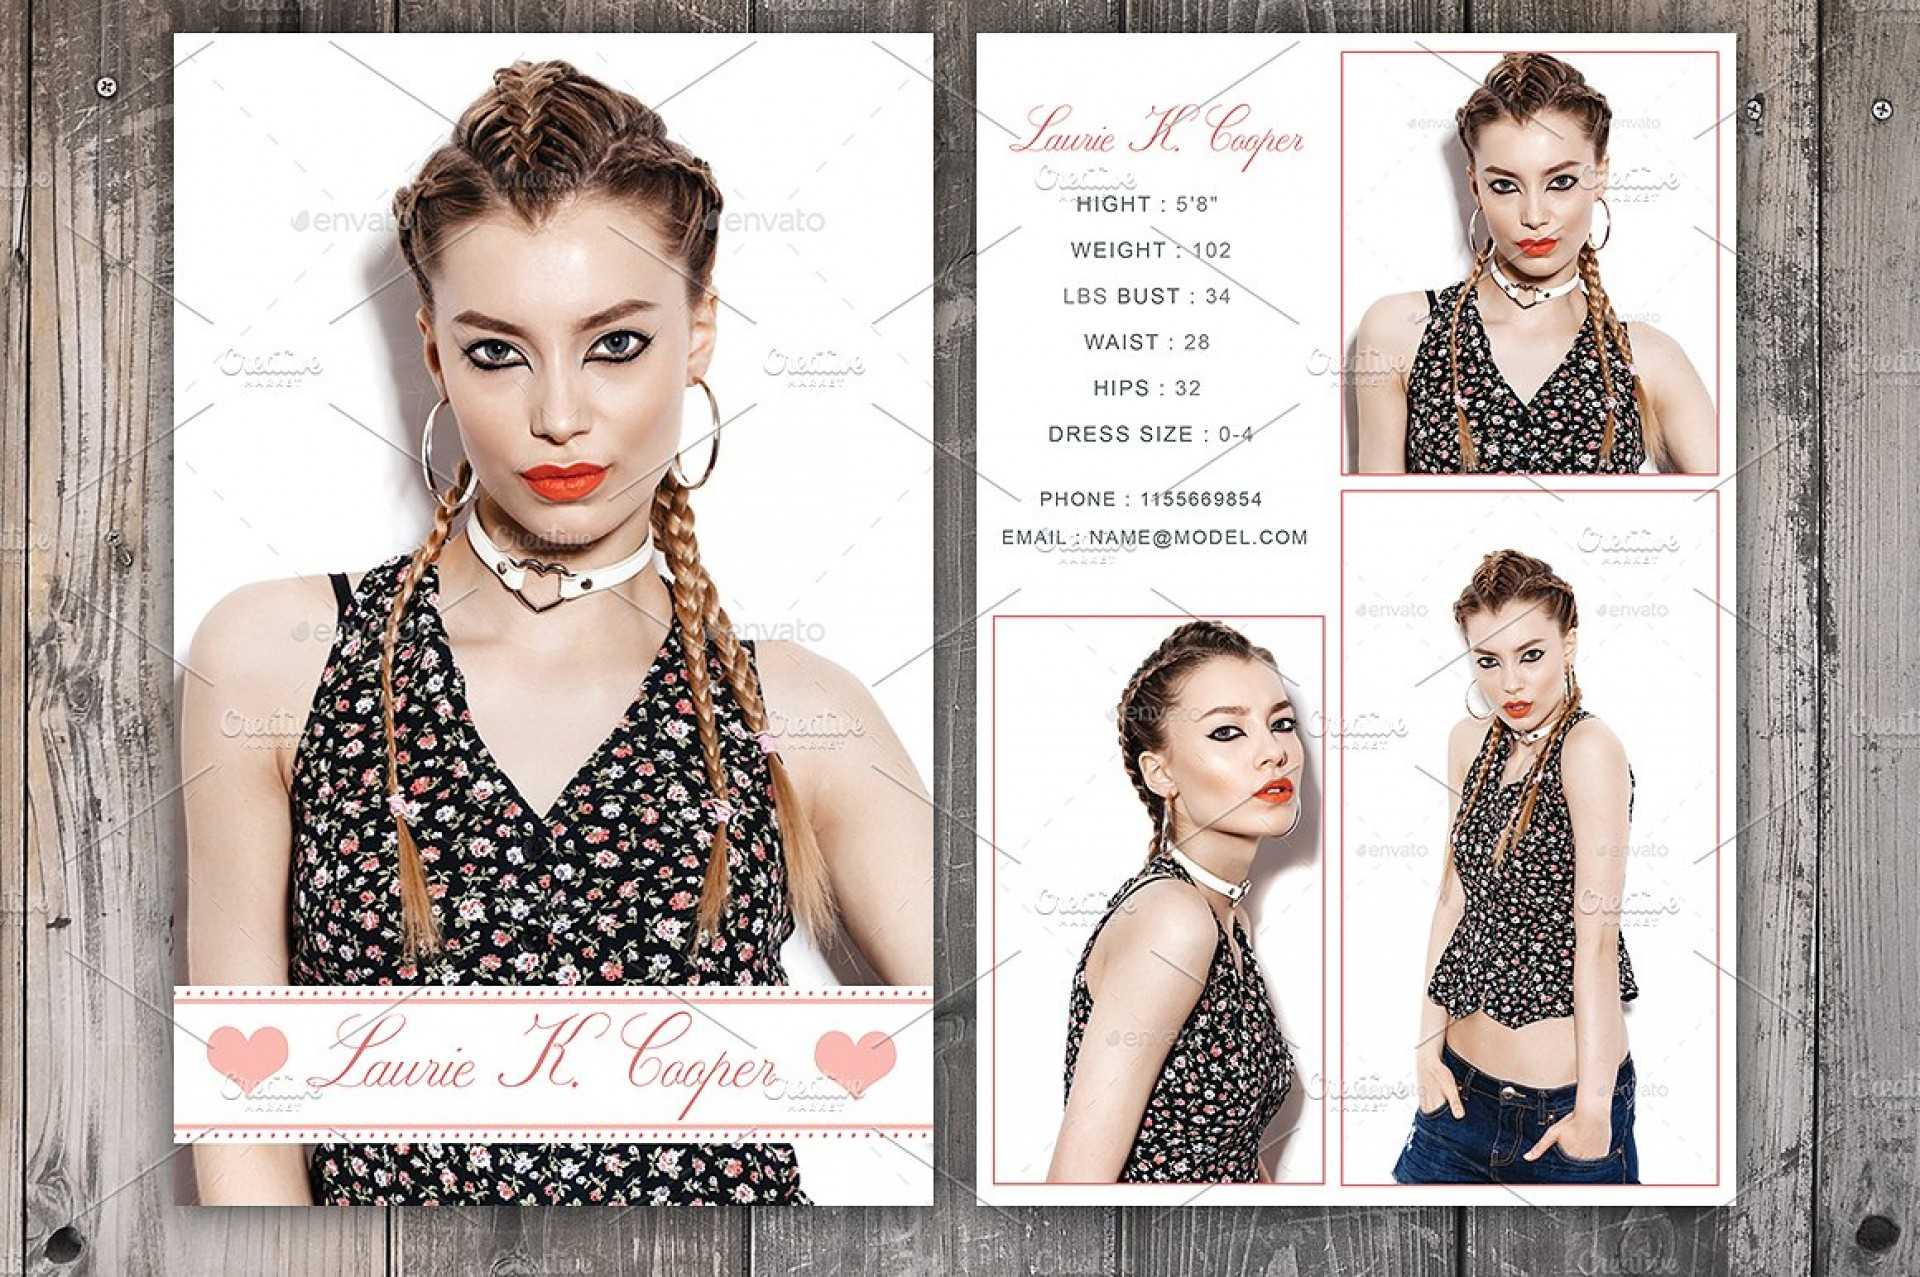 Free Model Comp Card Templates - C Punkt Throughout Download Comp Card Template